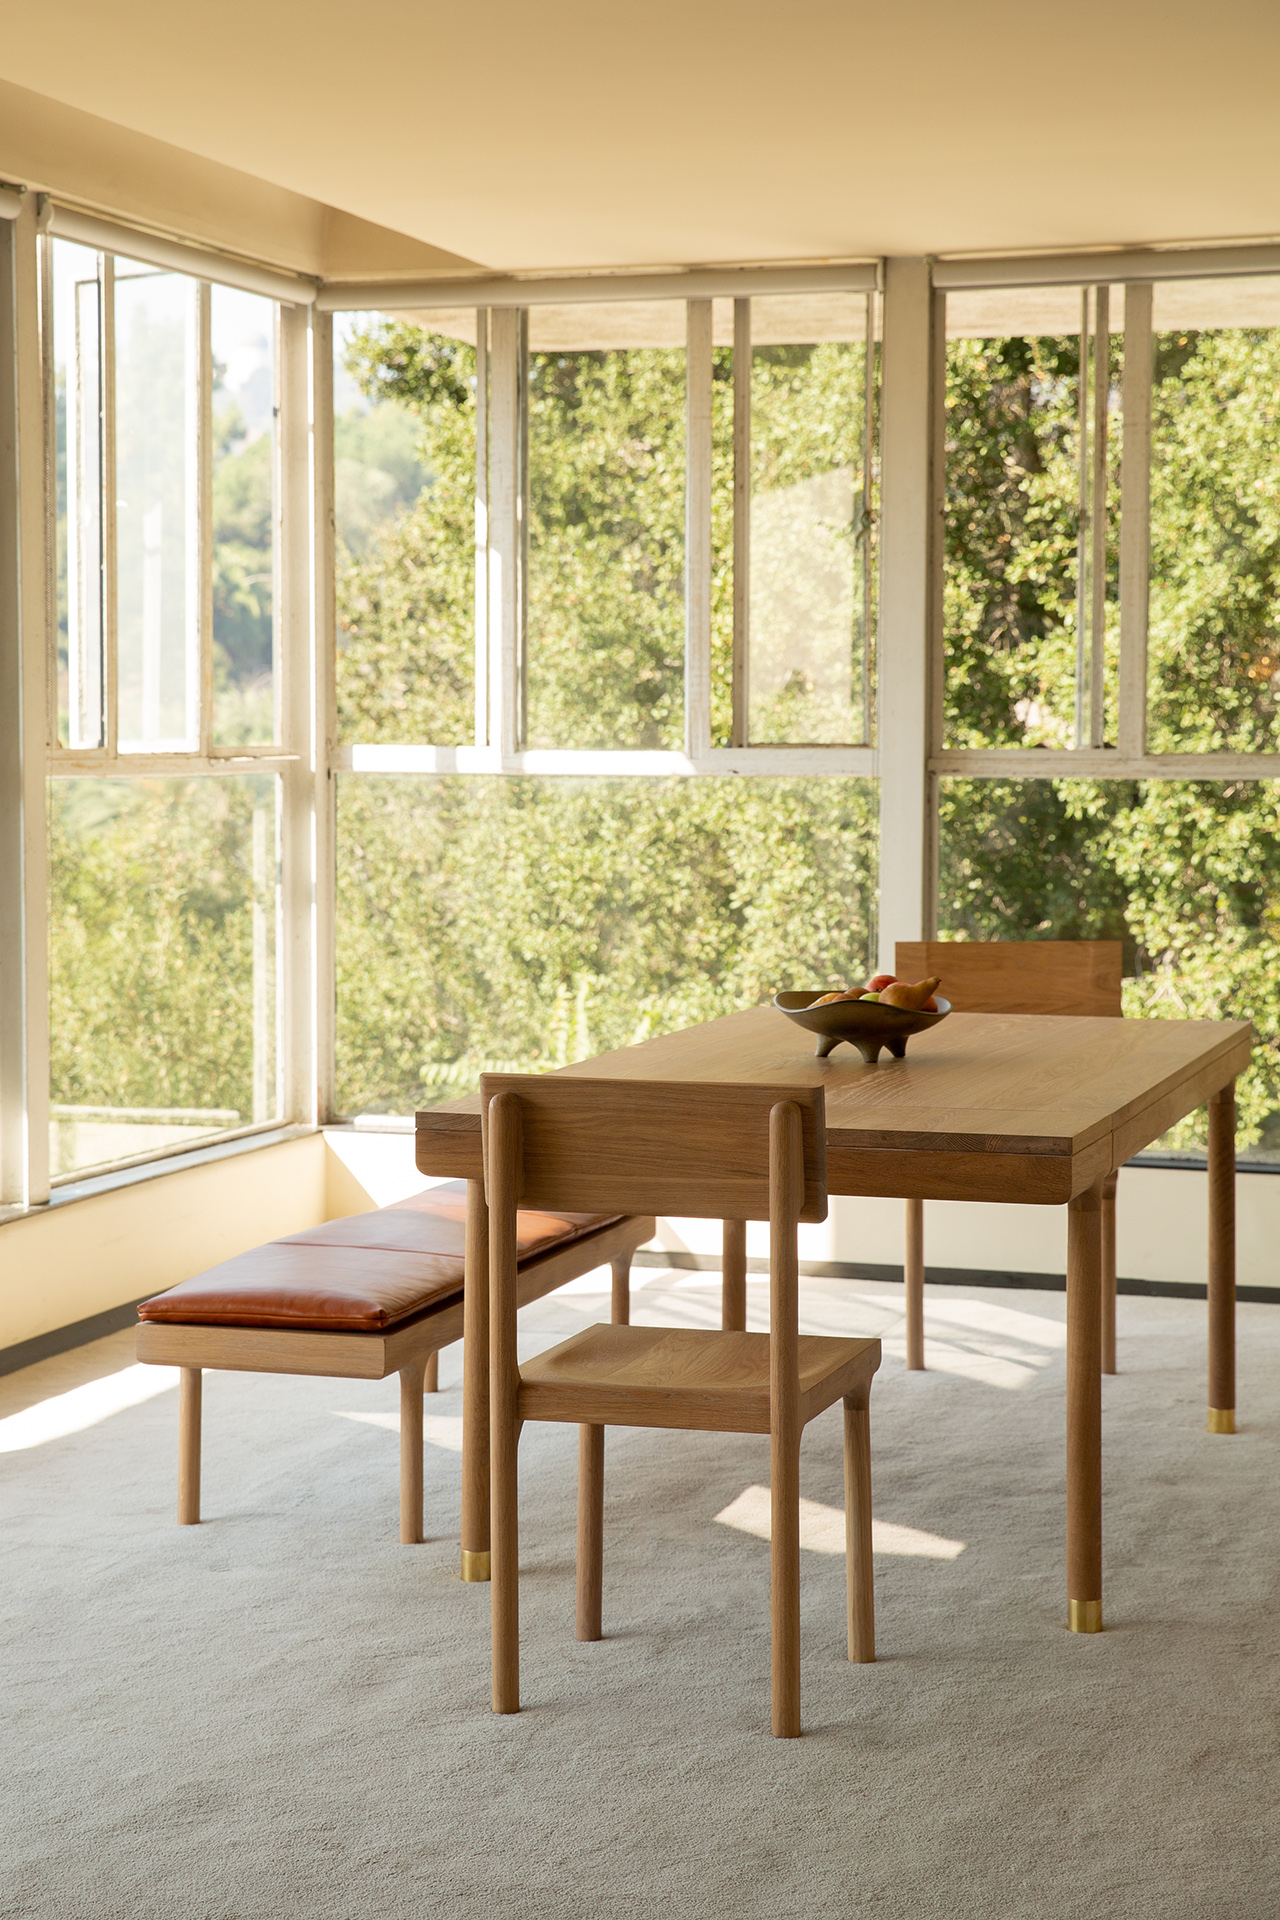 Oak dining table, dining chair, and leather topped bench in window-filled space